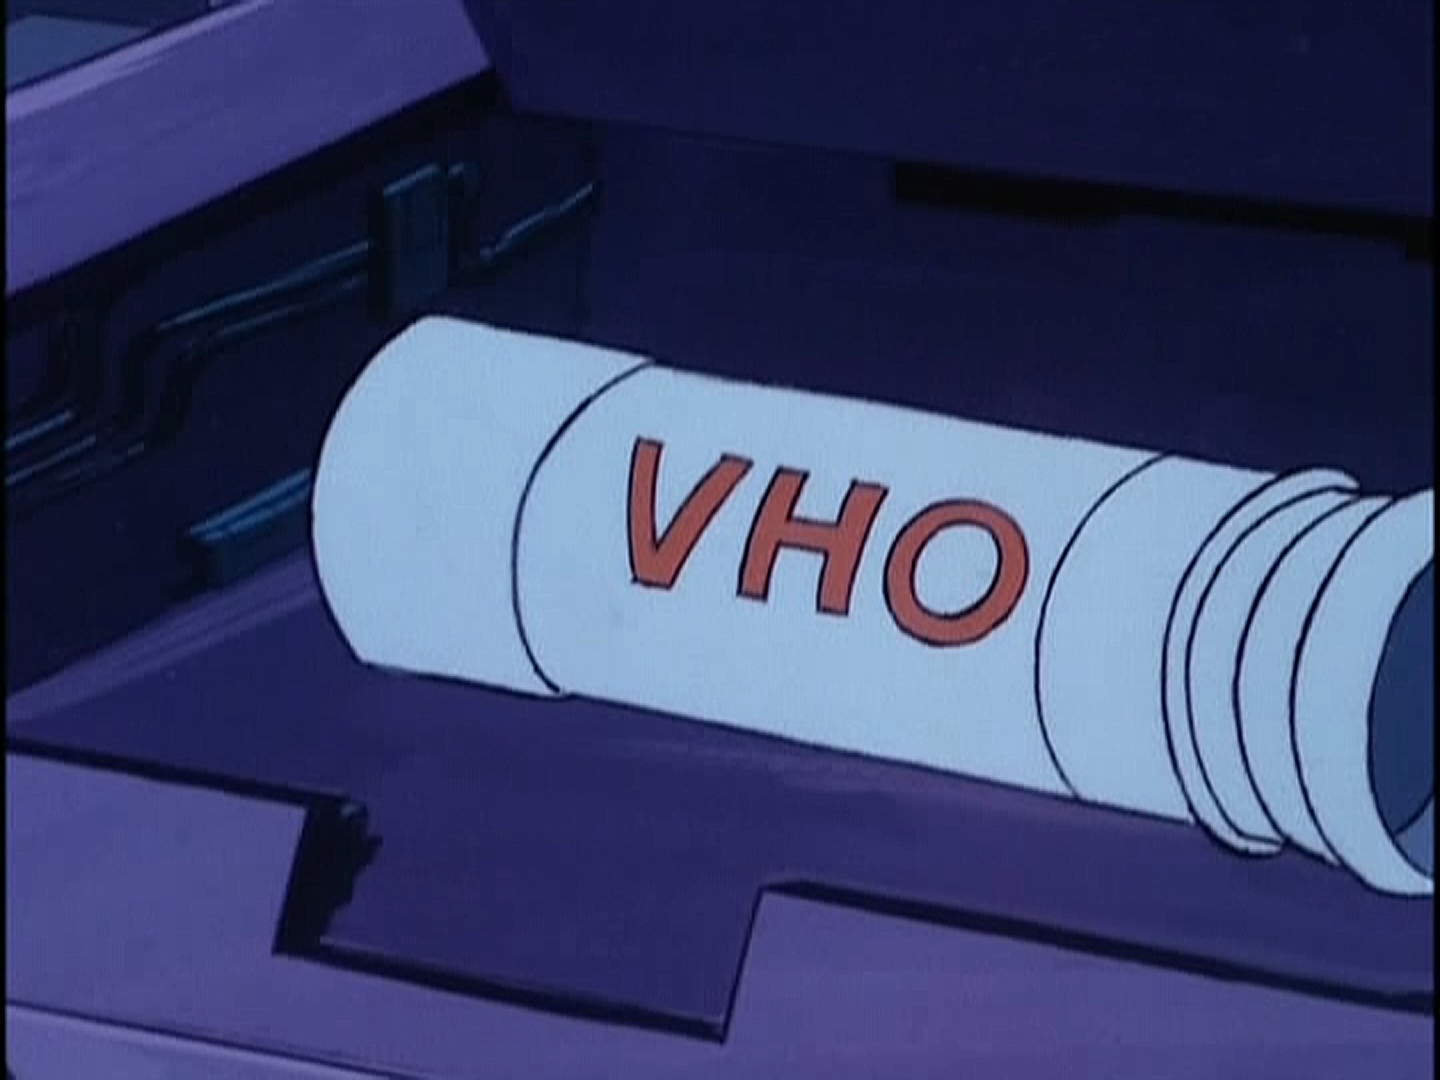 Search for the VHO